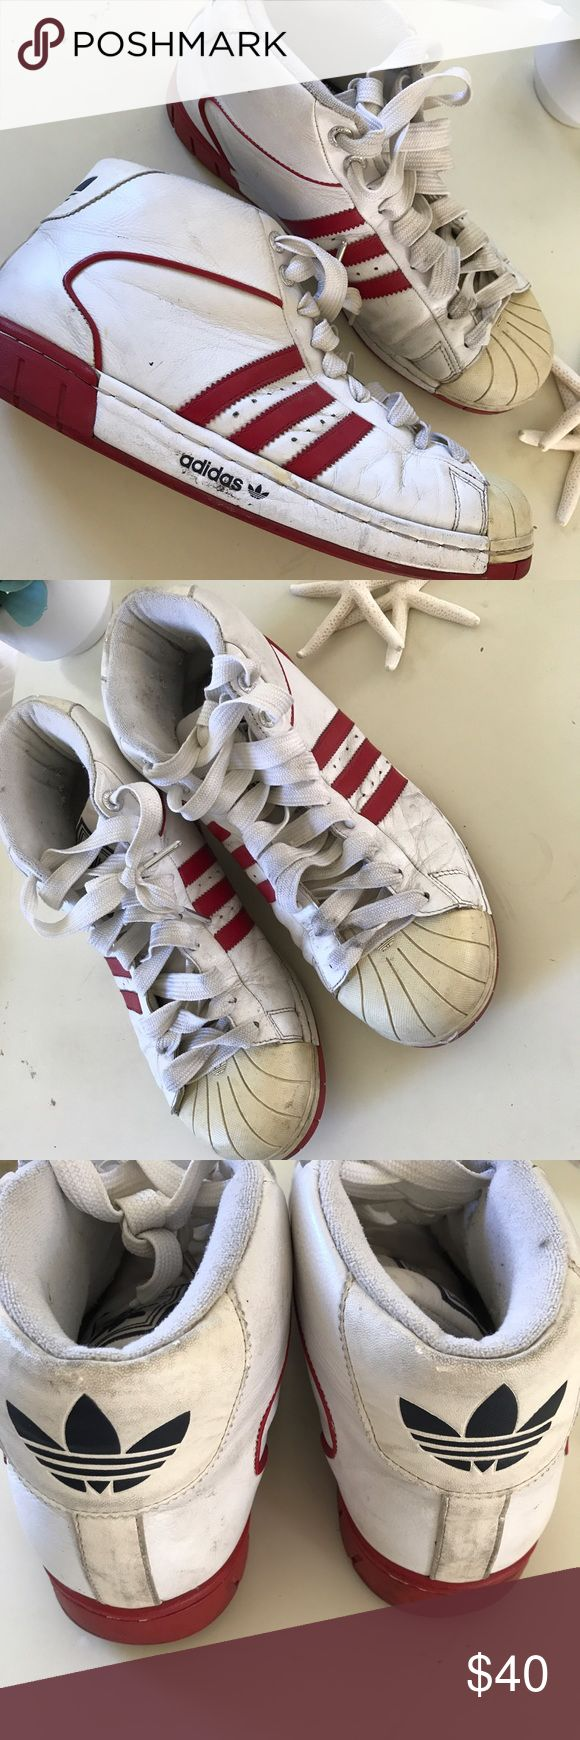 Men's Adidas high top basketball shoes 11 Shows some wear but still a lot of life left in them adidas Shoes Athletic Shoes